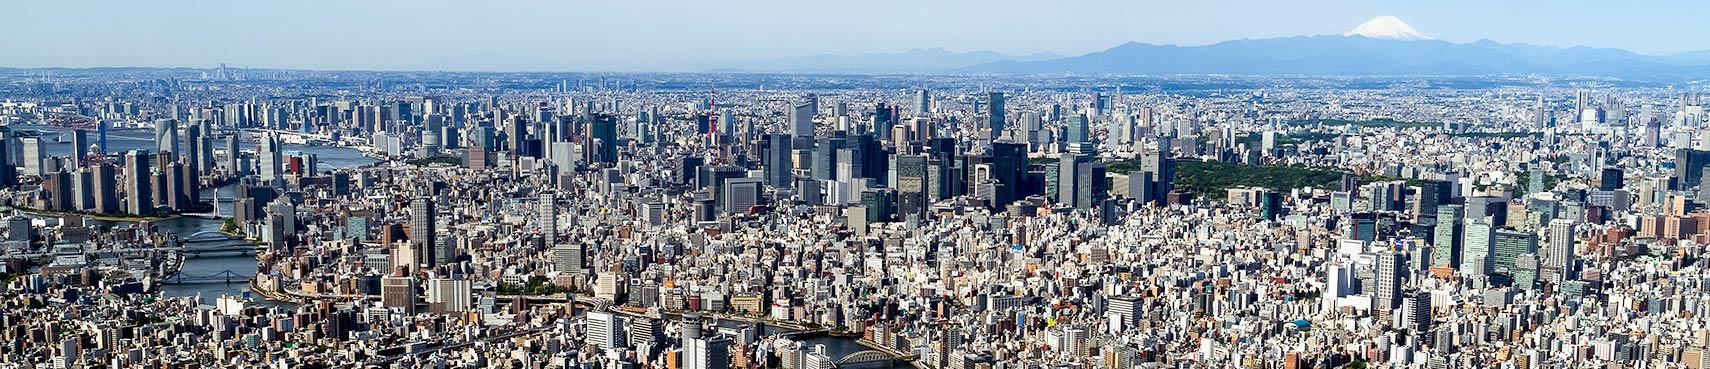 Google Map of Tokyo Metropolis, Japan - Nations Online Project